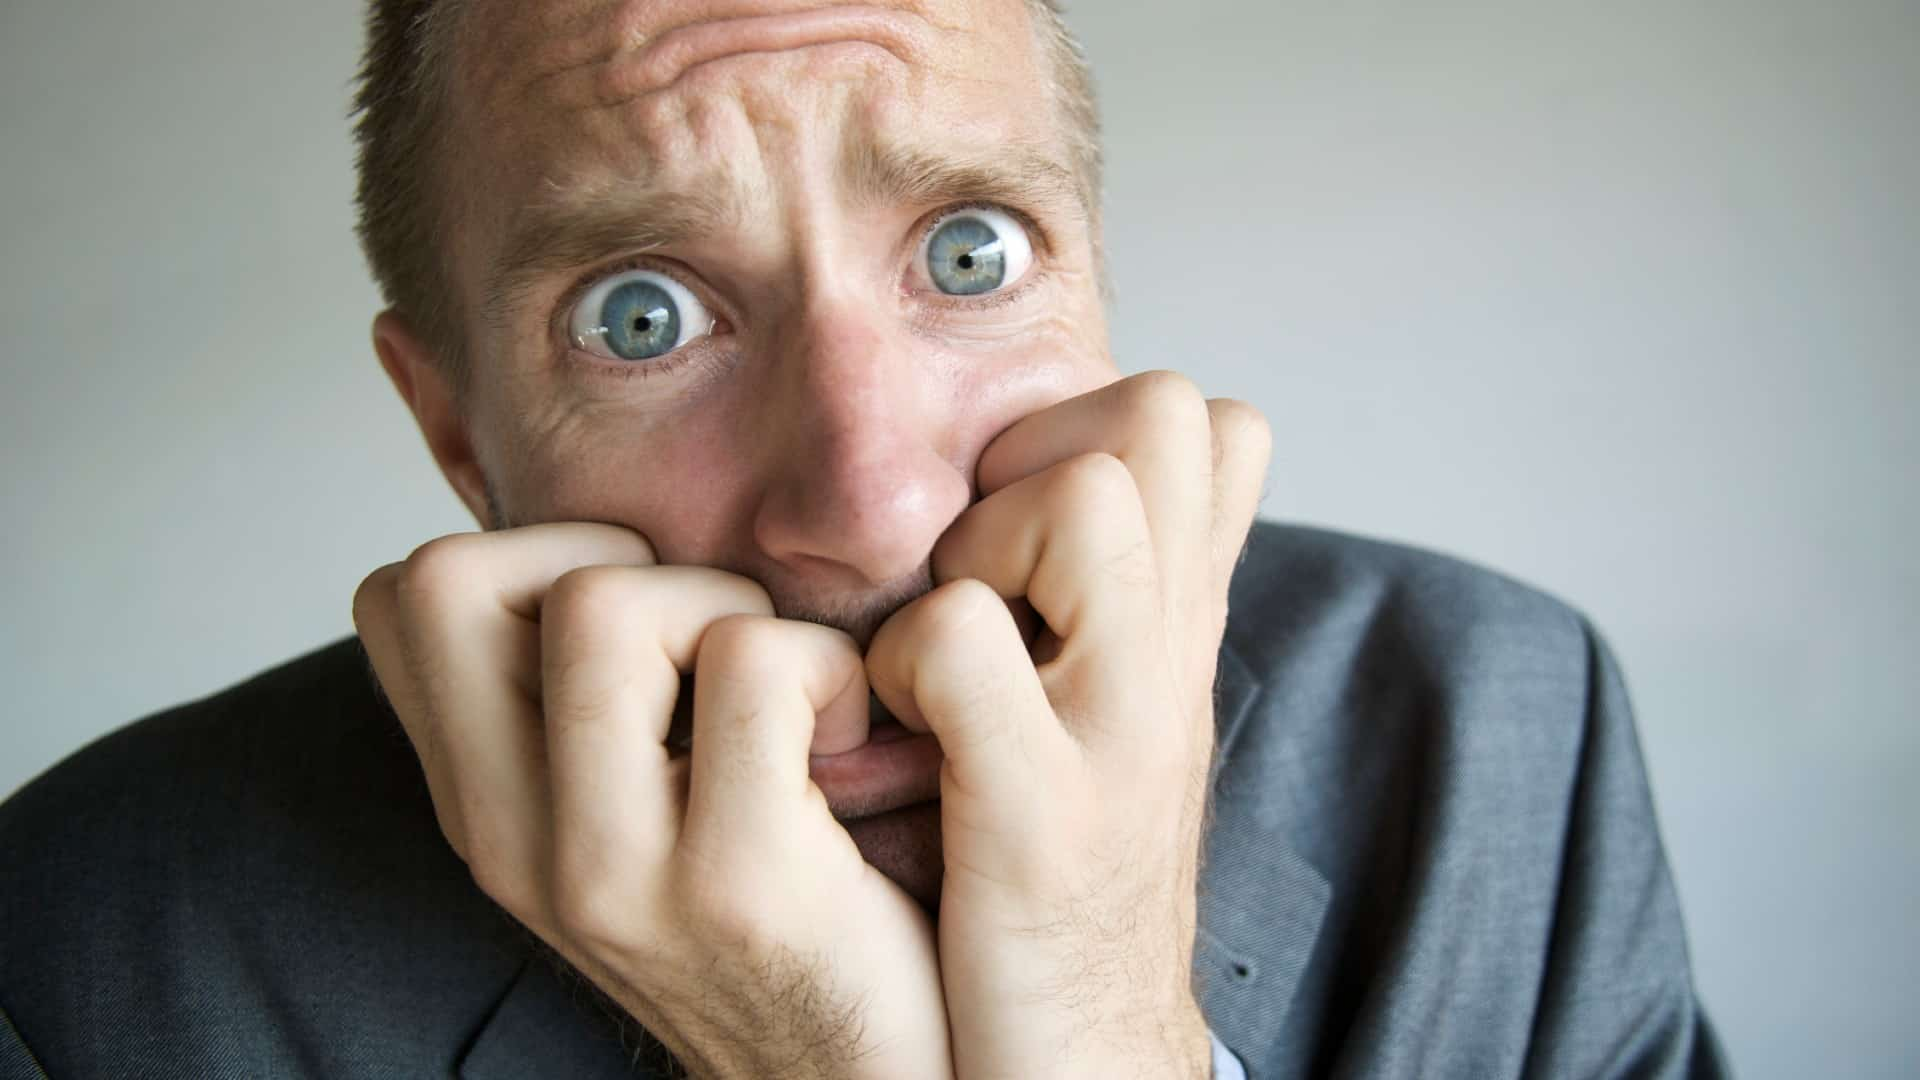 A worried man chews his fingers, indicating a share price crash or drop on the ASX